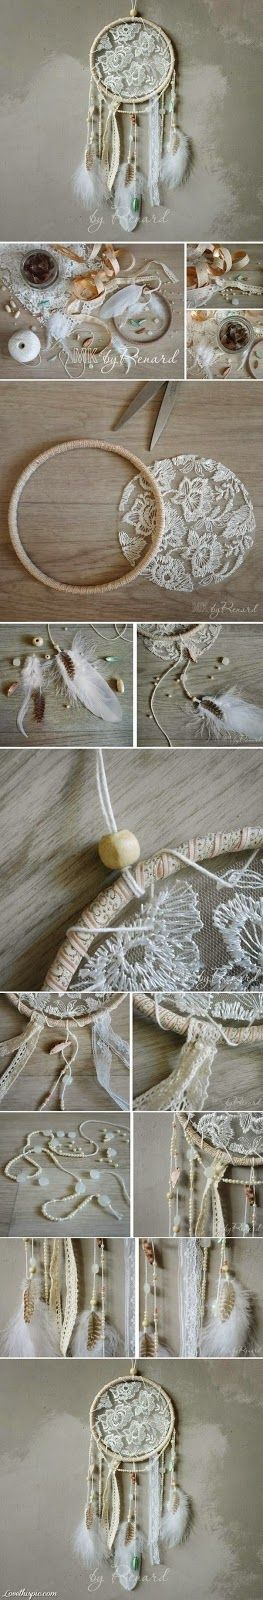 Beautiful Creations by Bece: Lace Dream Catcher!